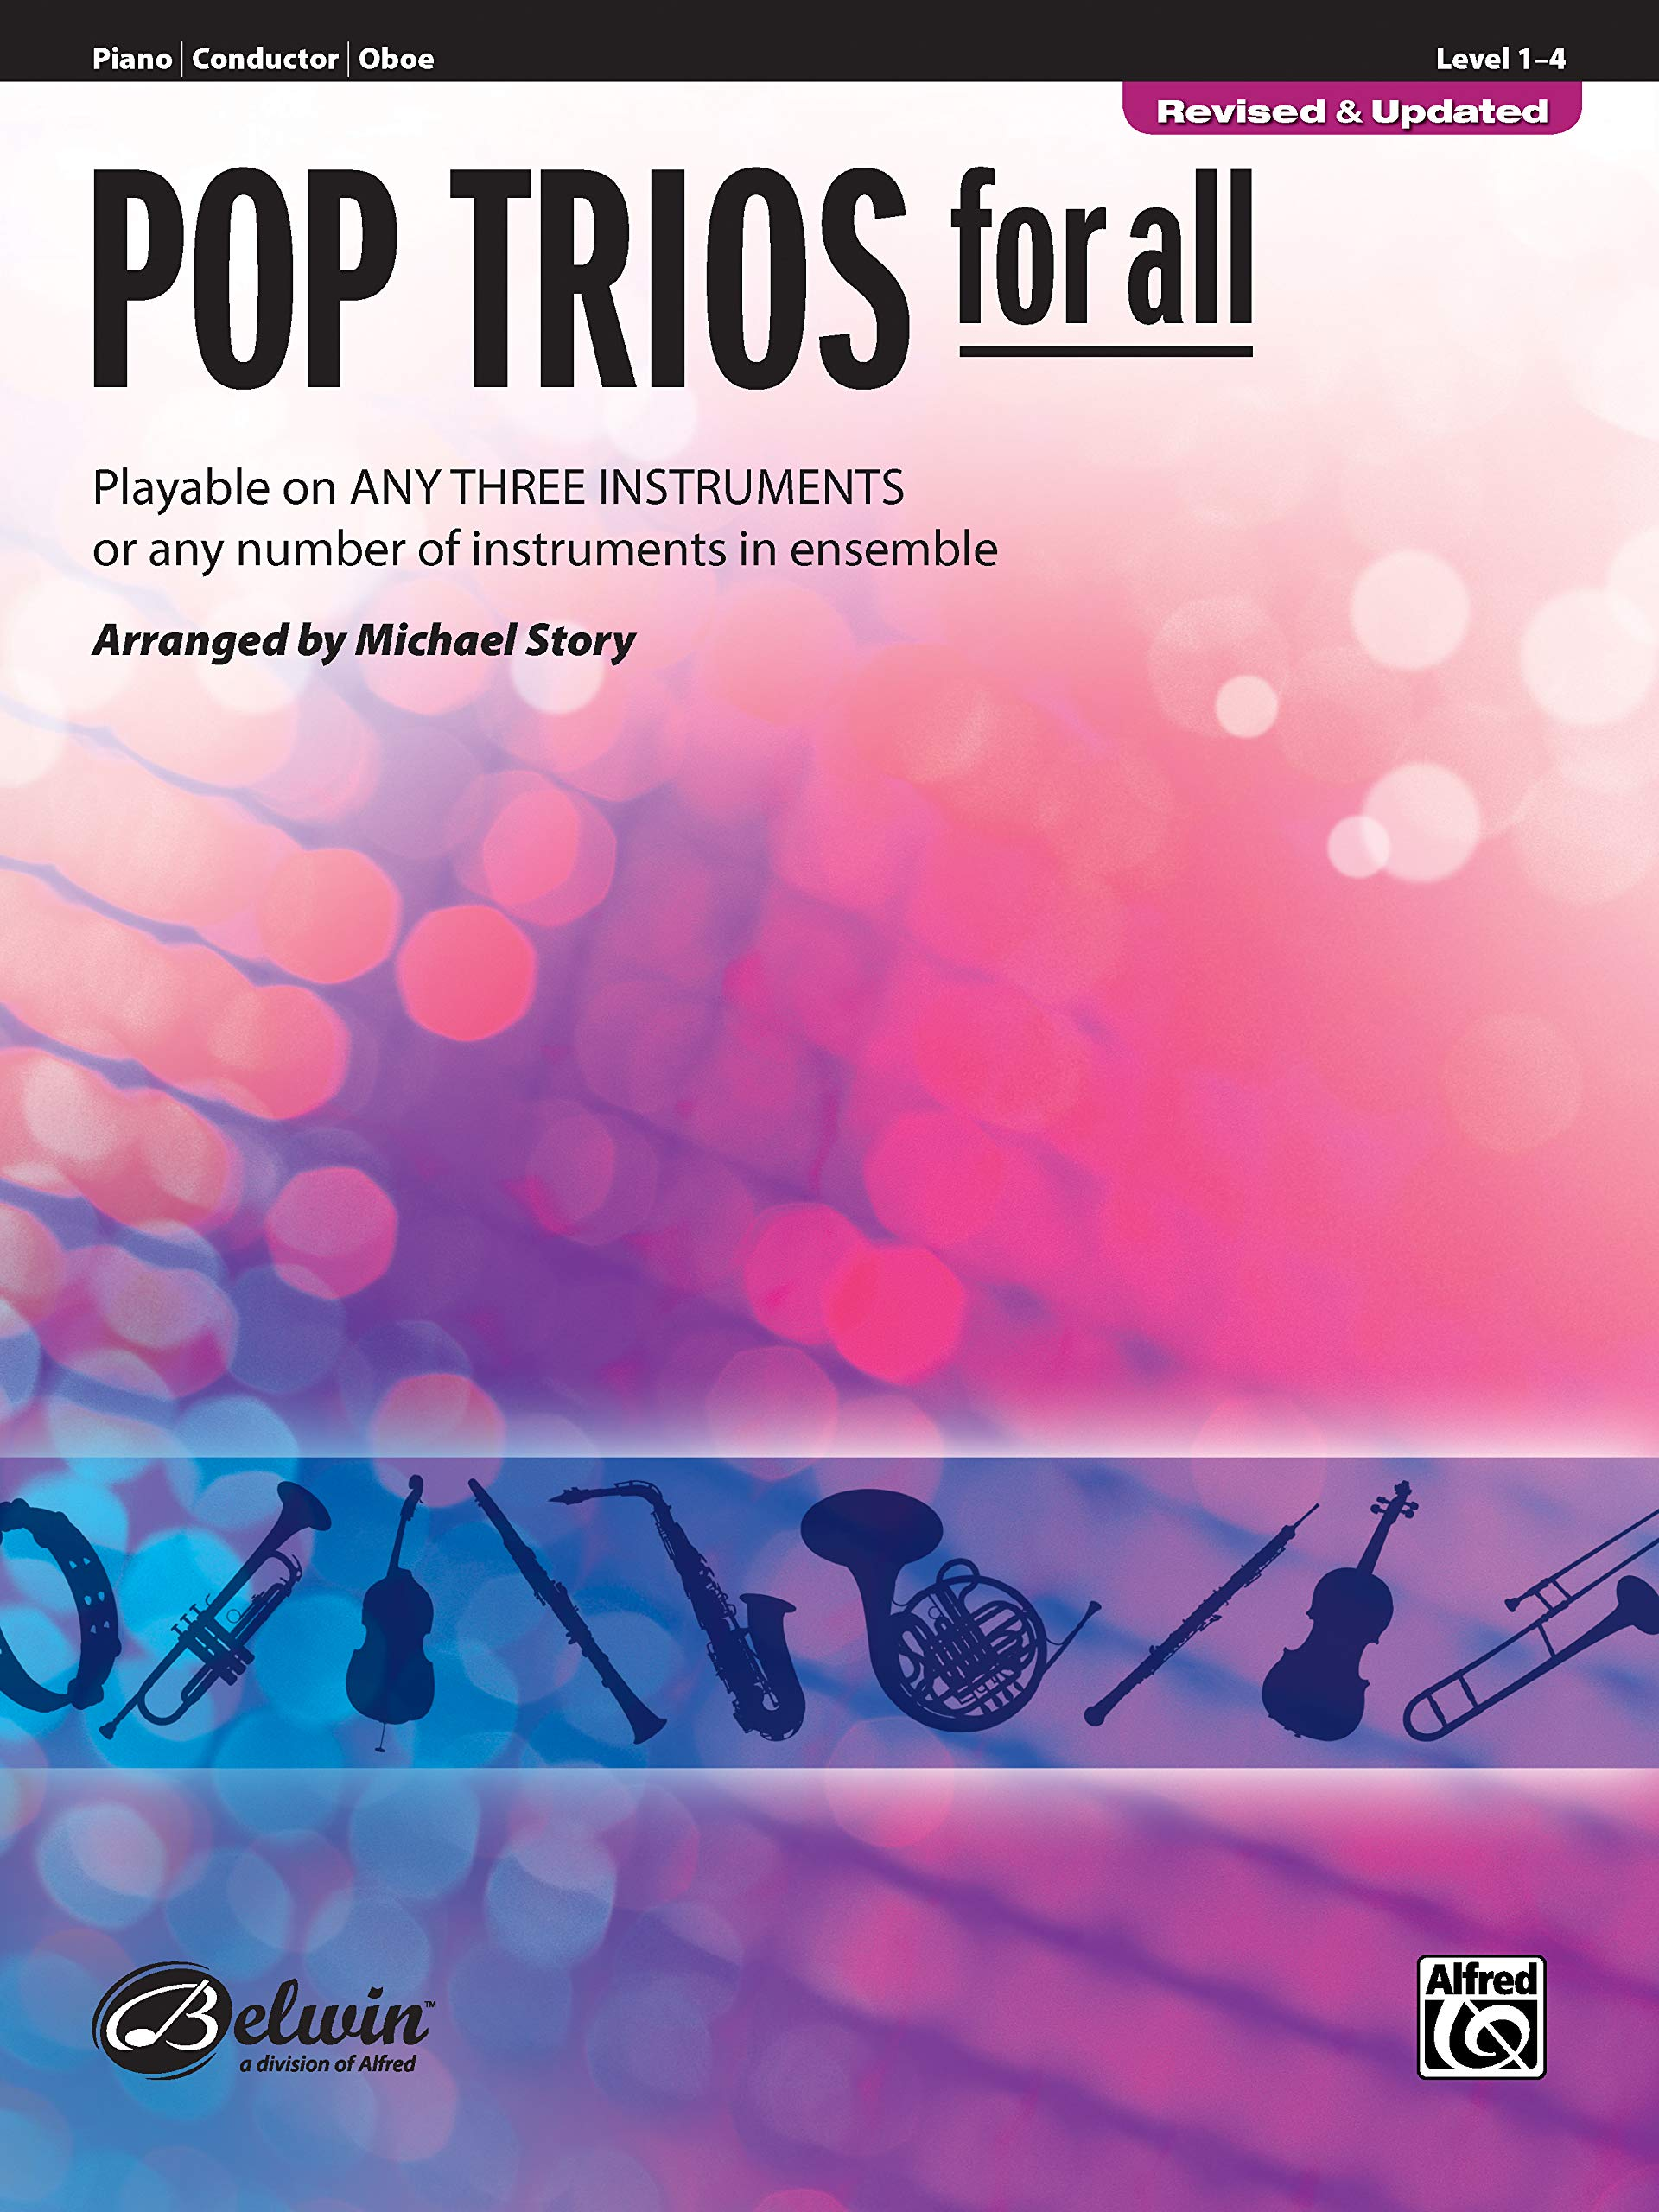 Pop Trios For All   Piano   Conductor   Oboe  Playable On Any Three Instruments Or Any Number Of Instruments In Ensemble  Pop Instrumental Ensembles For All